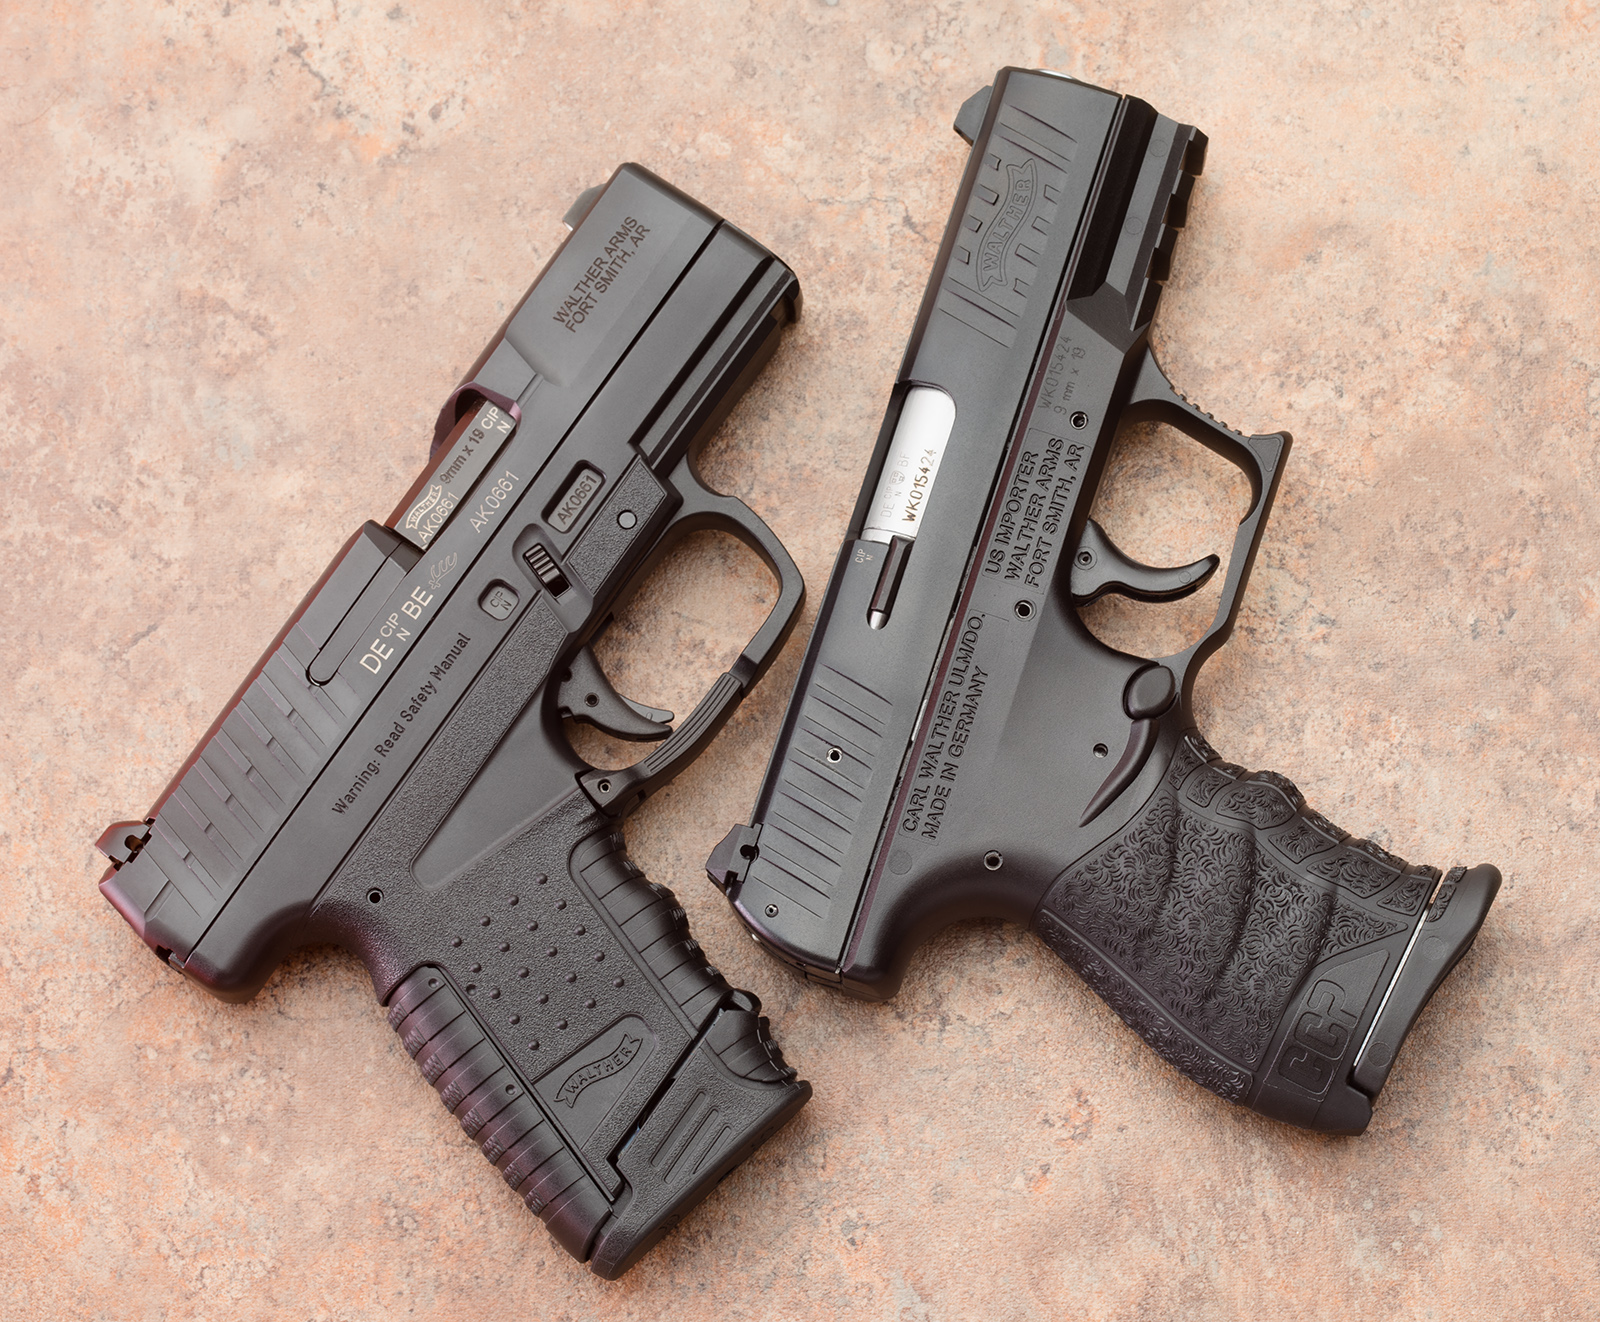 walther ccp vs pps same goal different ways to achieve it